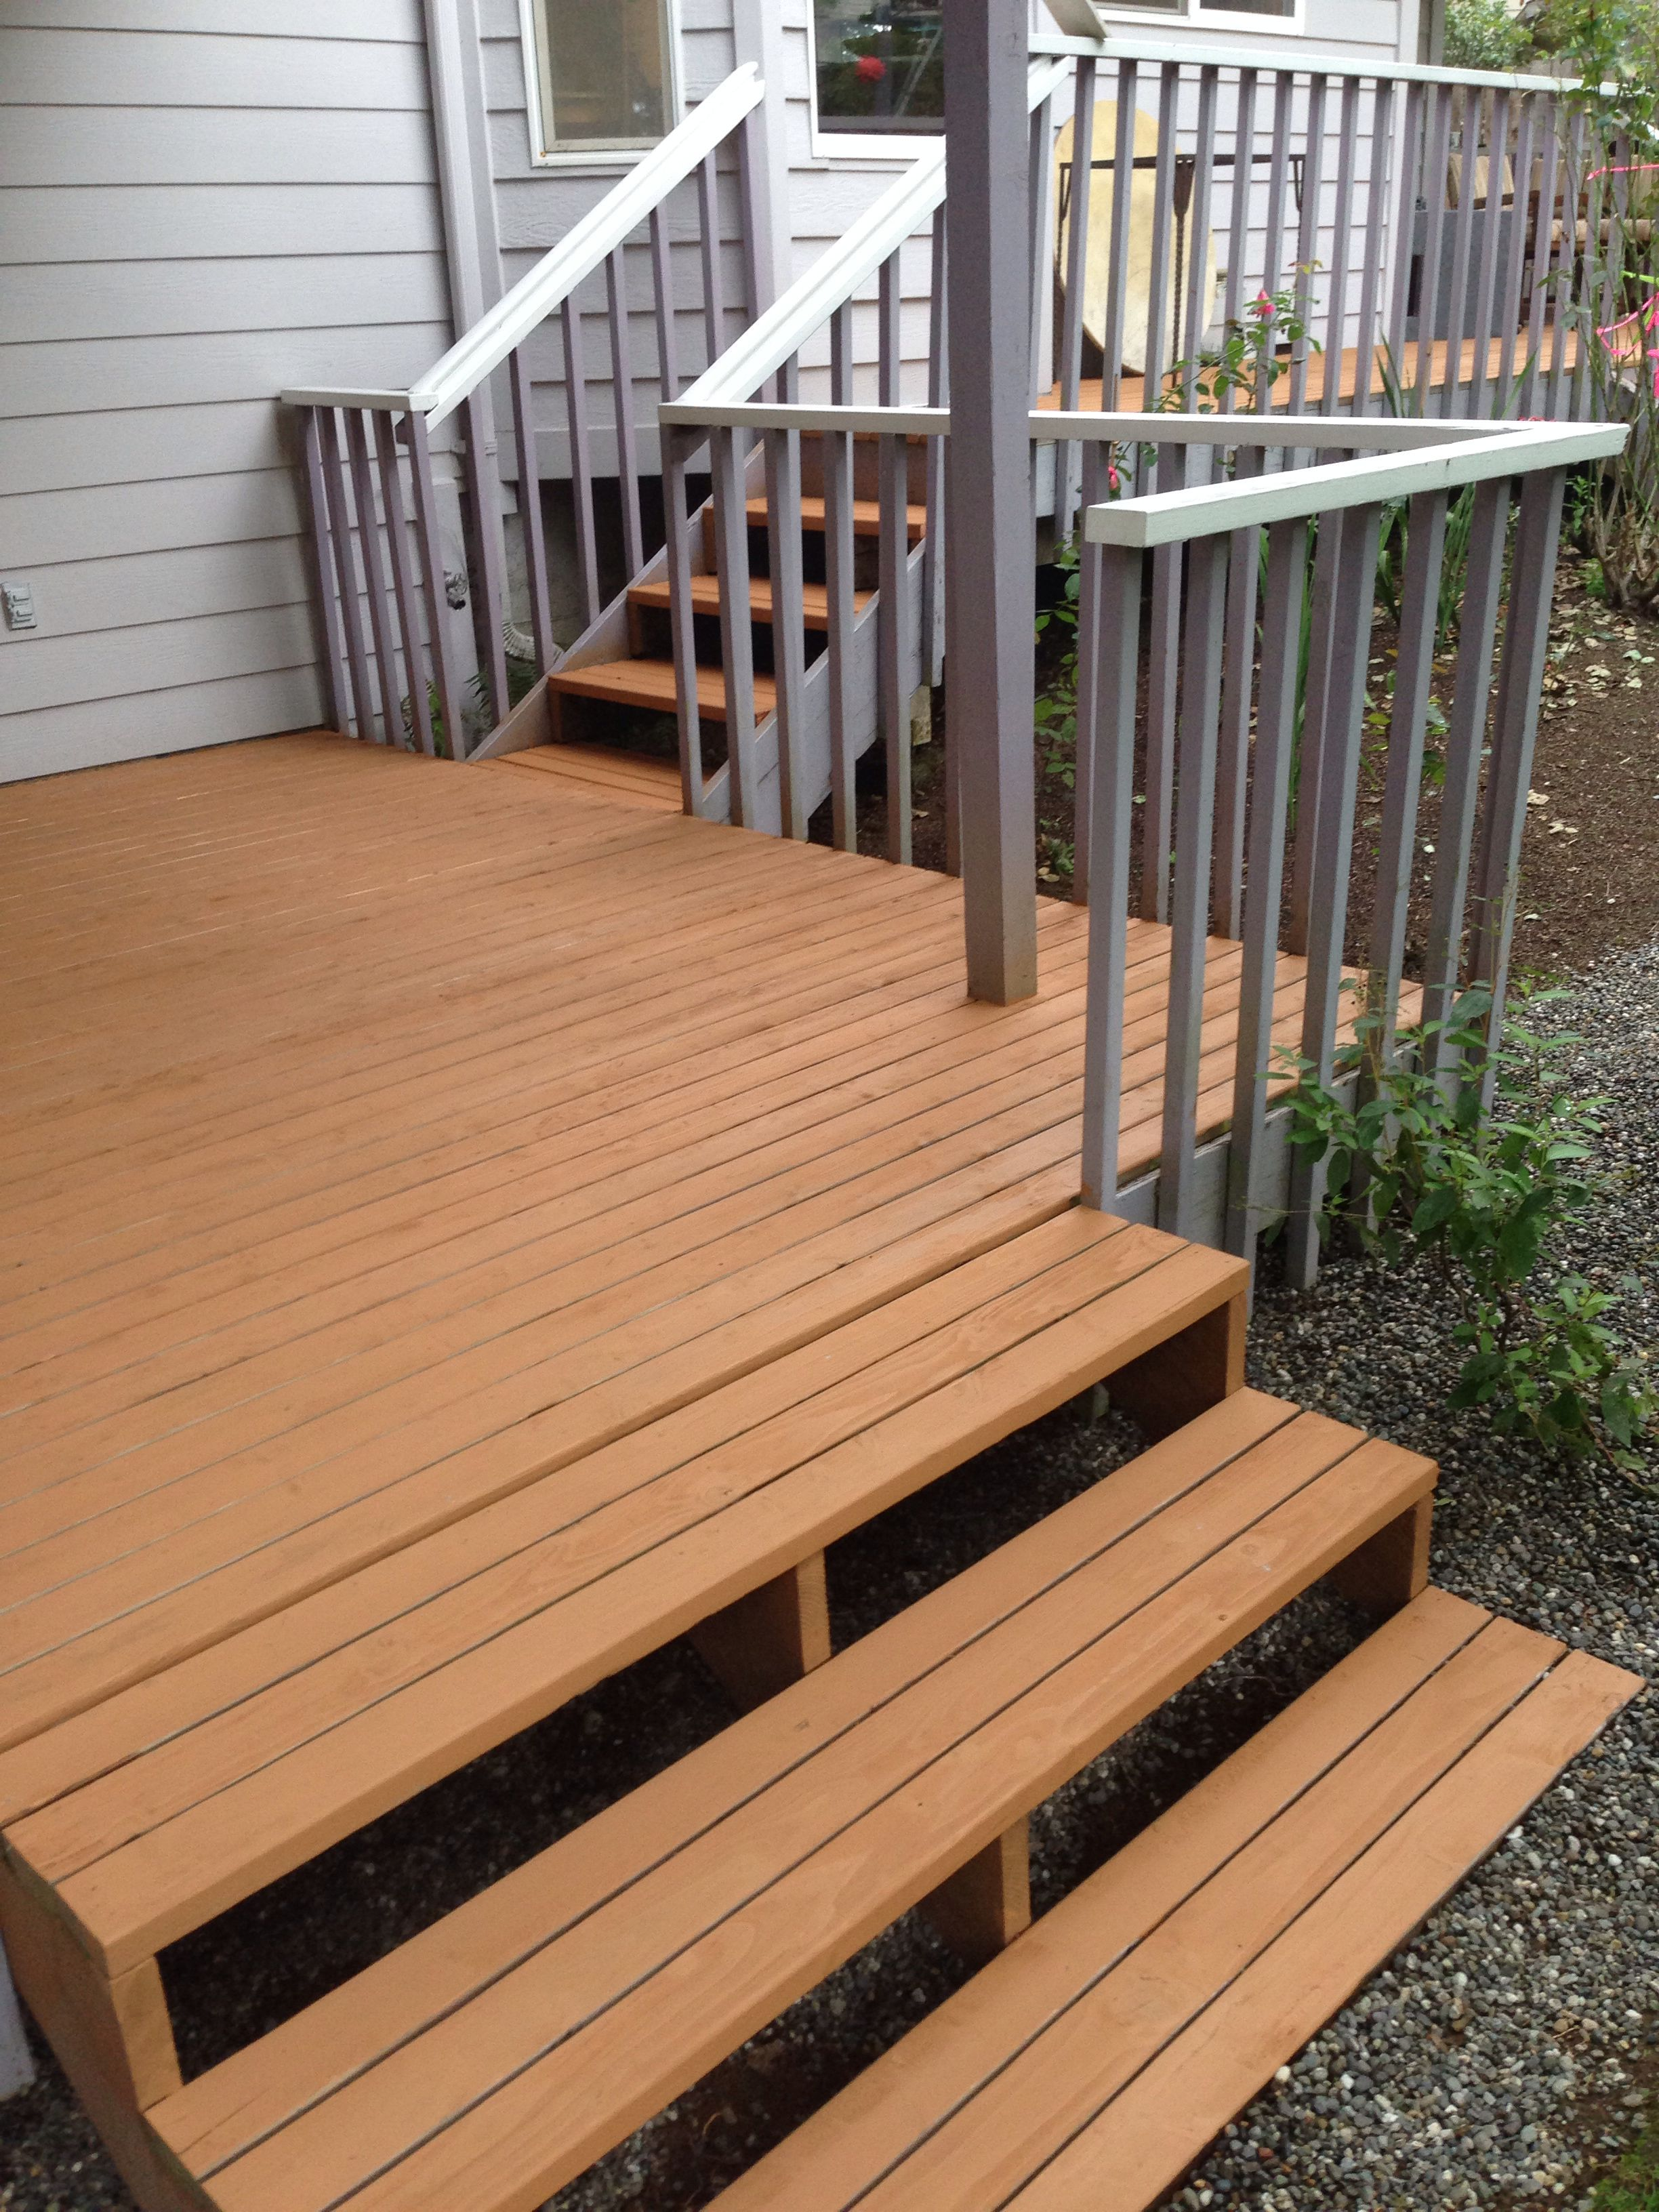 rob stained the deck using olympic max stain in cedar